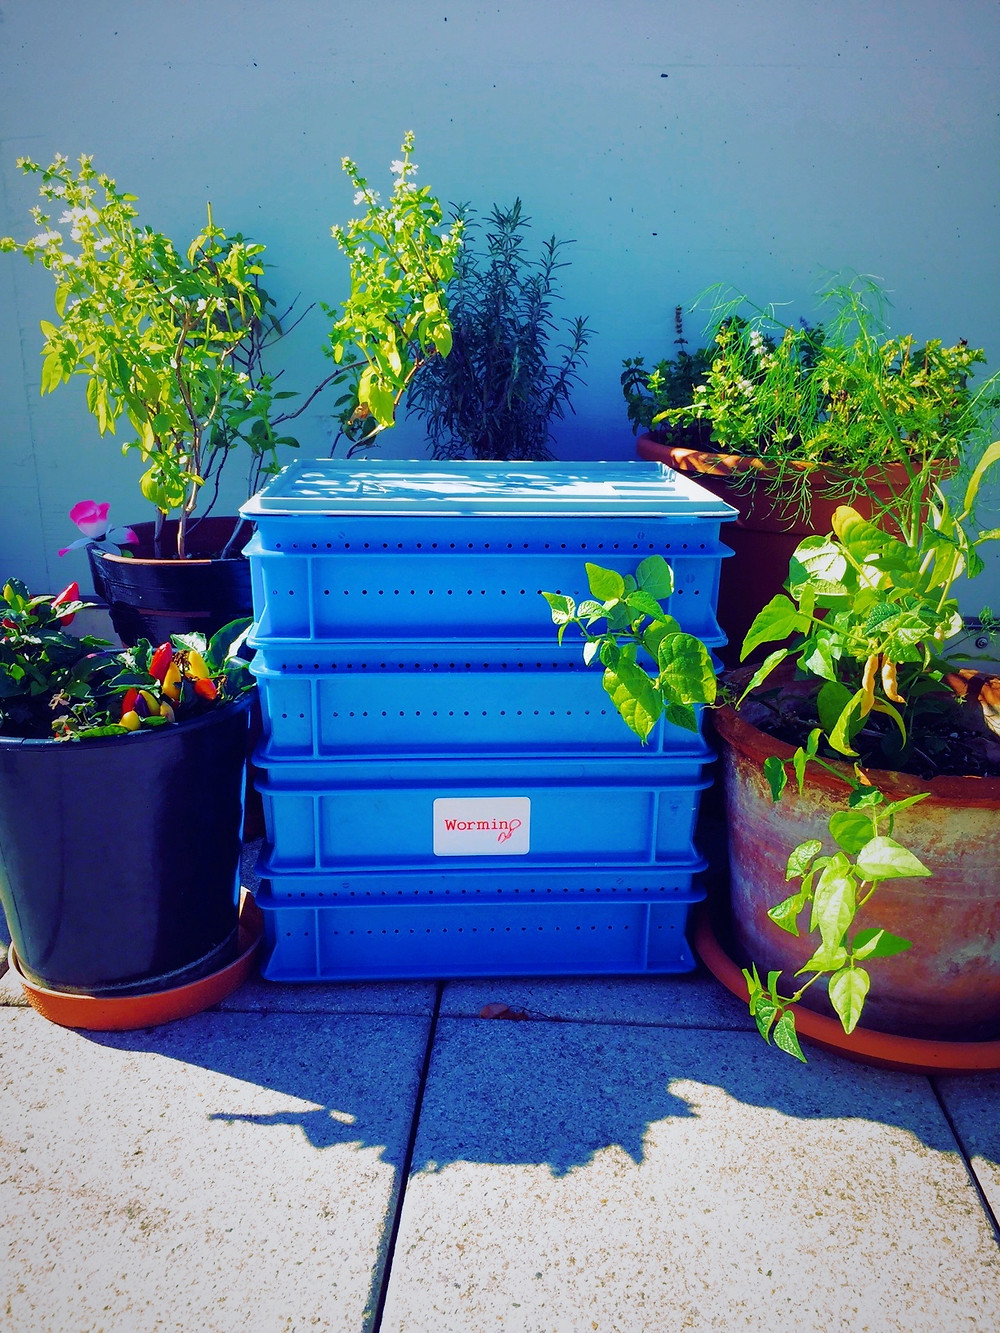 Worm composter. Up-cycled materials.